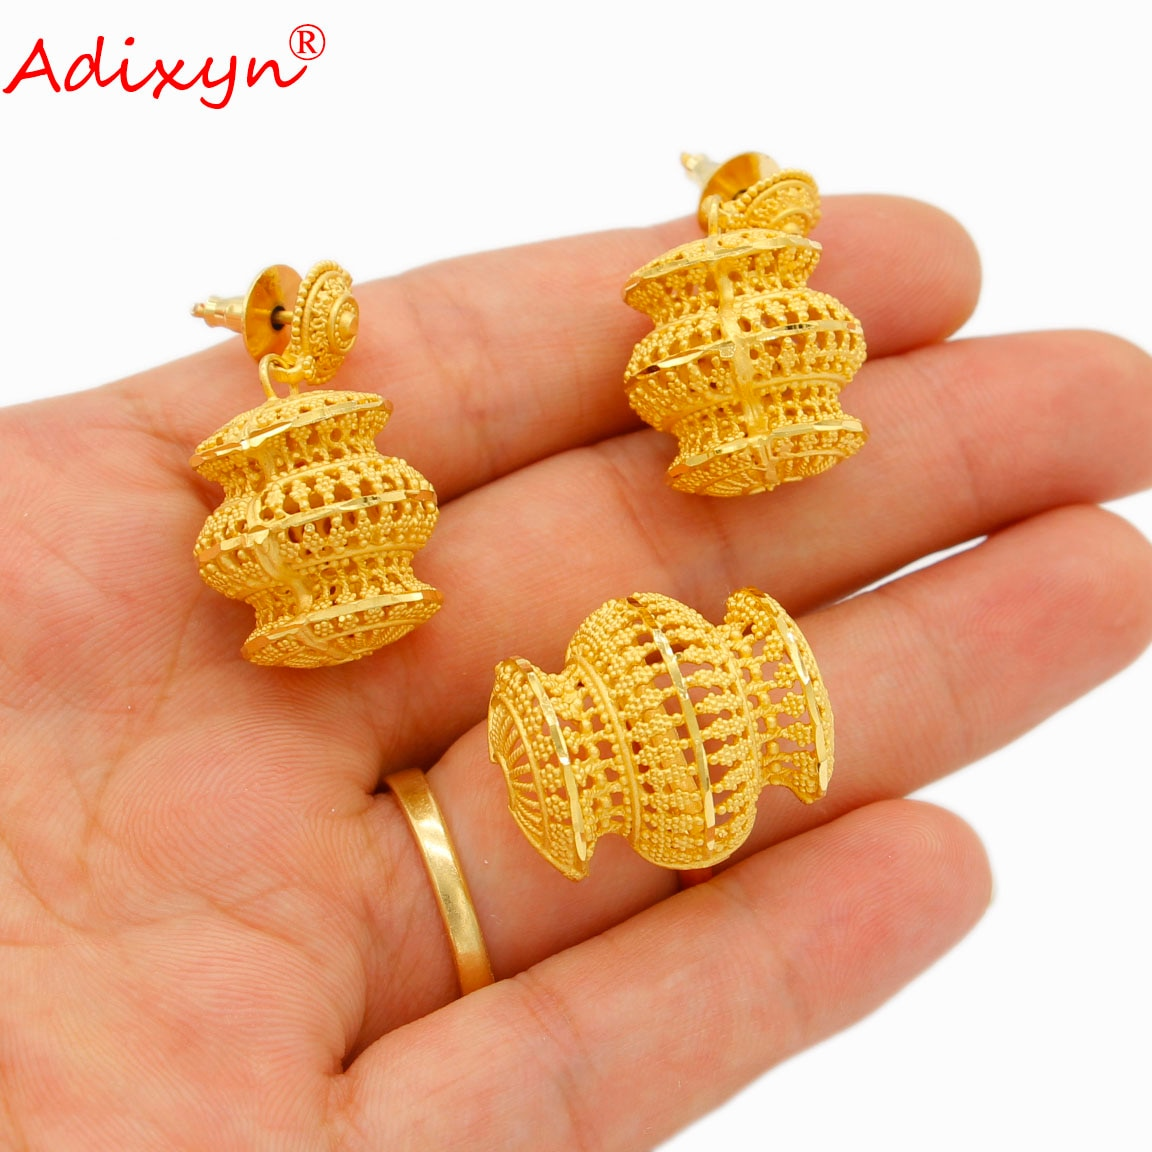 Adixyn Dubai 24K Gold Color Jewelry sets for Women Inidan Necklace Earrings Ring Set Bridal Wedding Gifts N082811